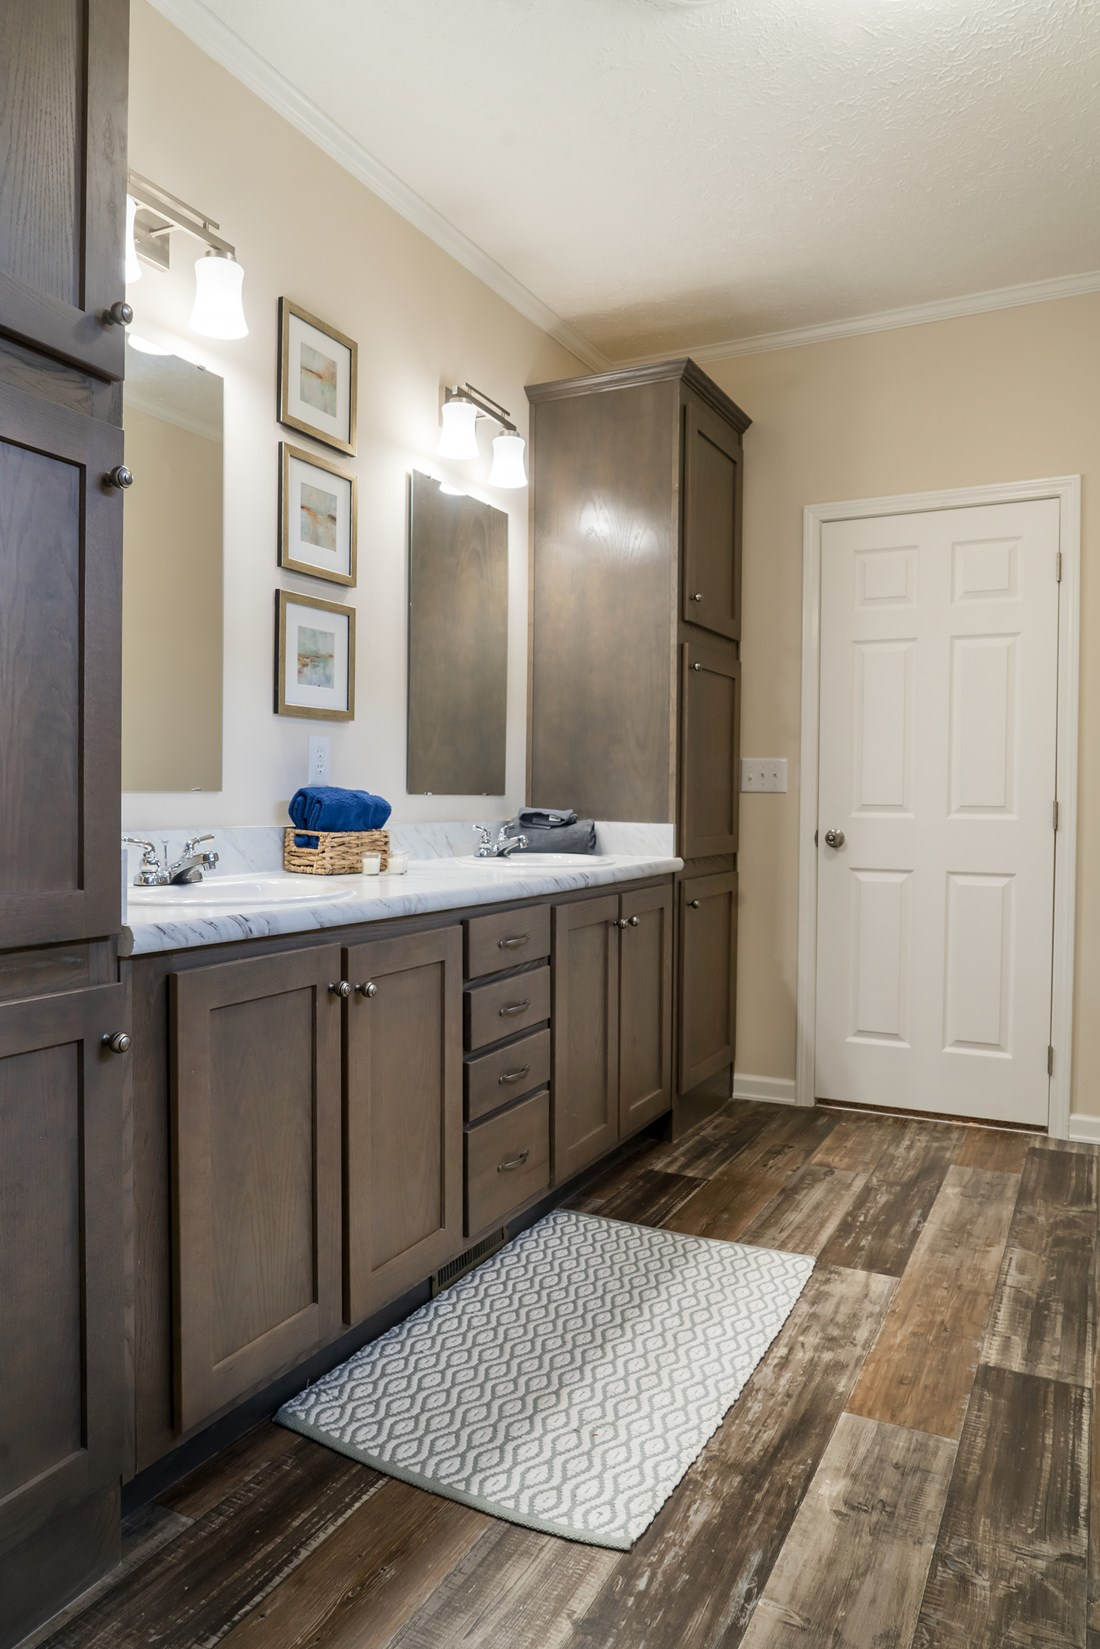 The 2062 CLASSIC Master Bathroom. This Manufactured Mobile Home features 3 bedrooms and 2 baths.